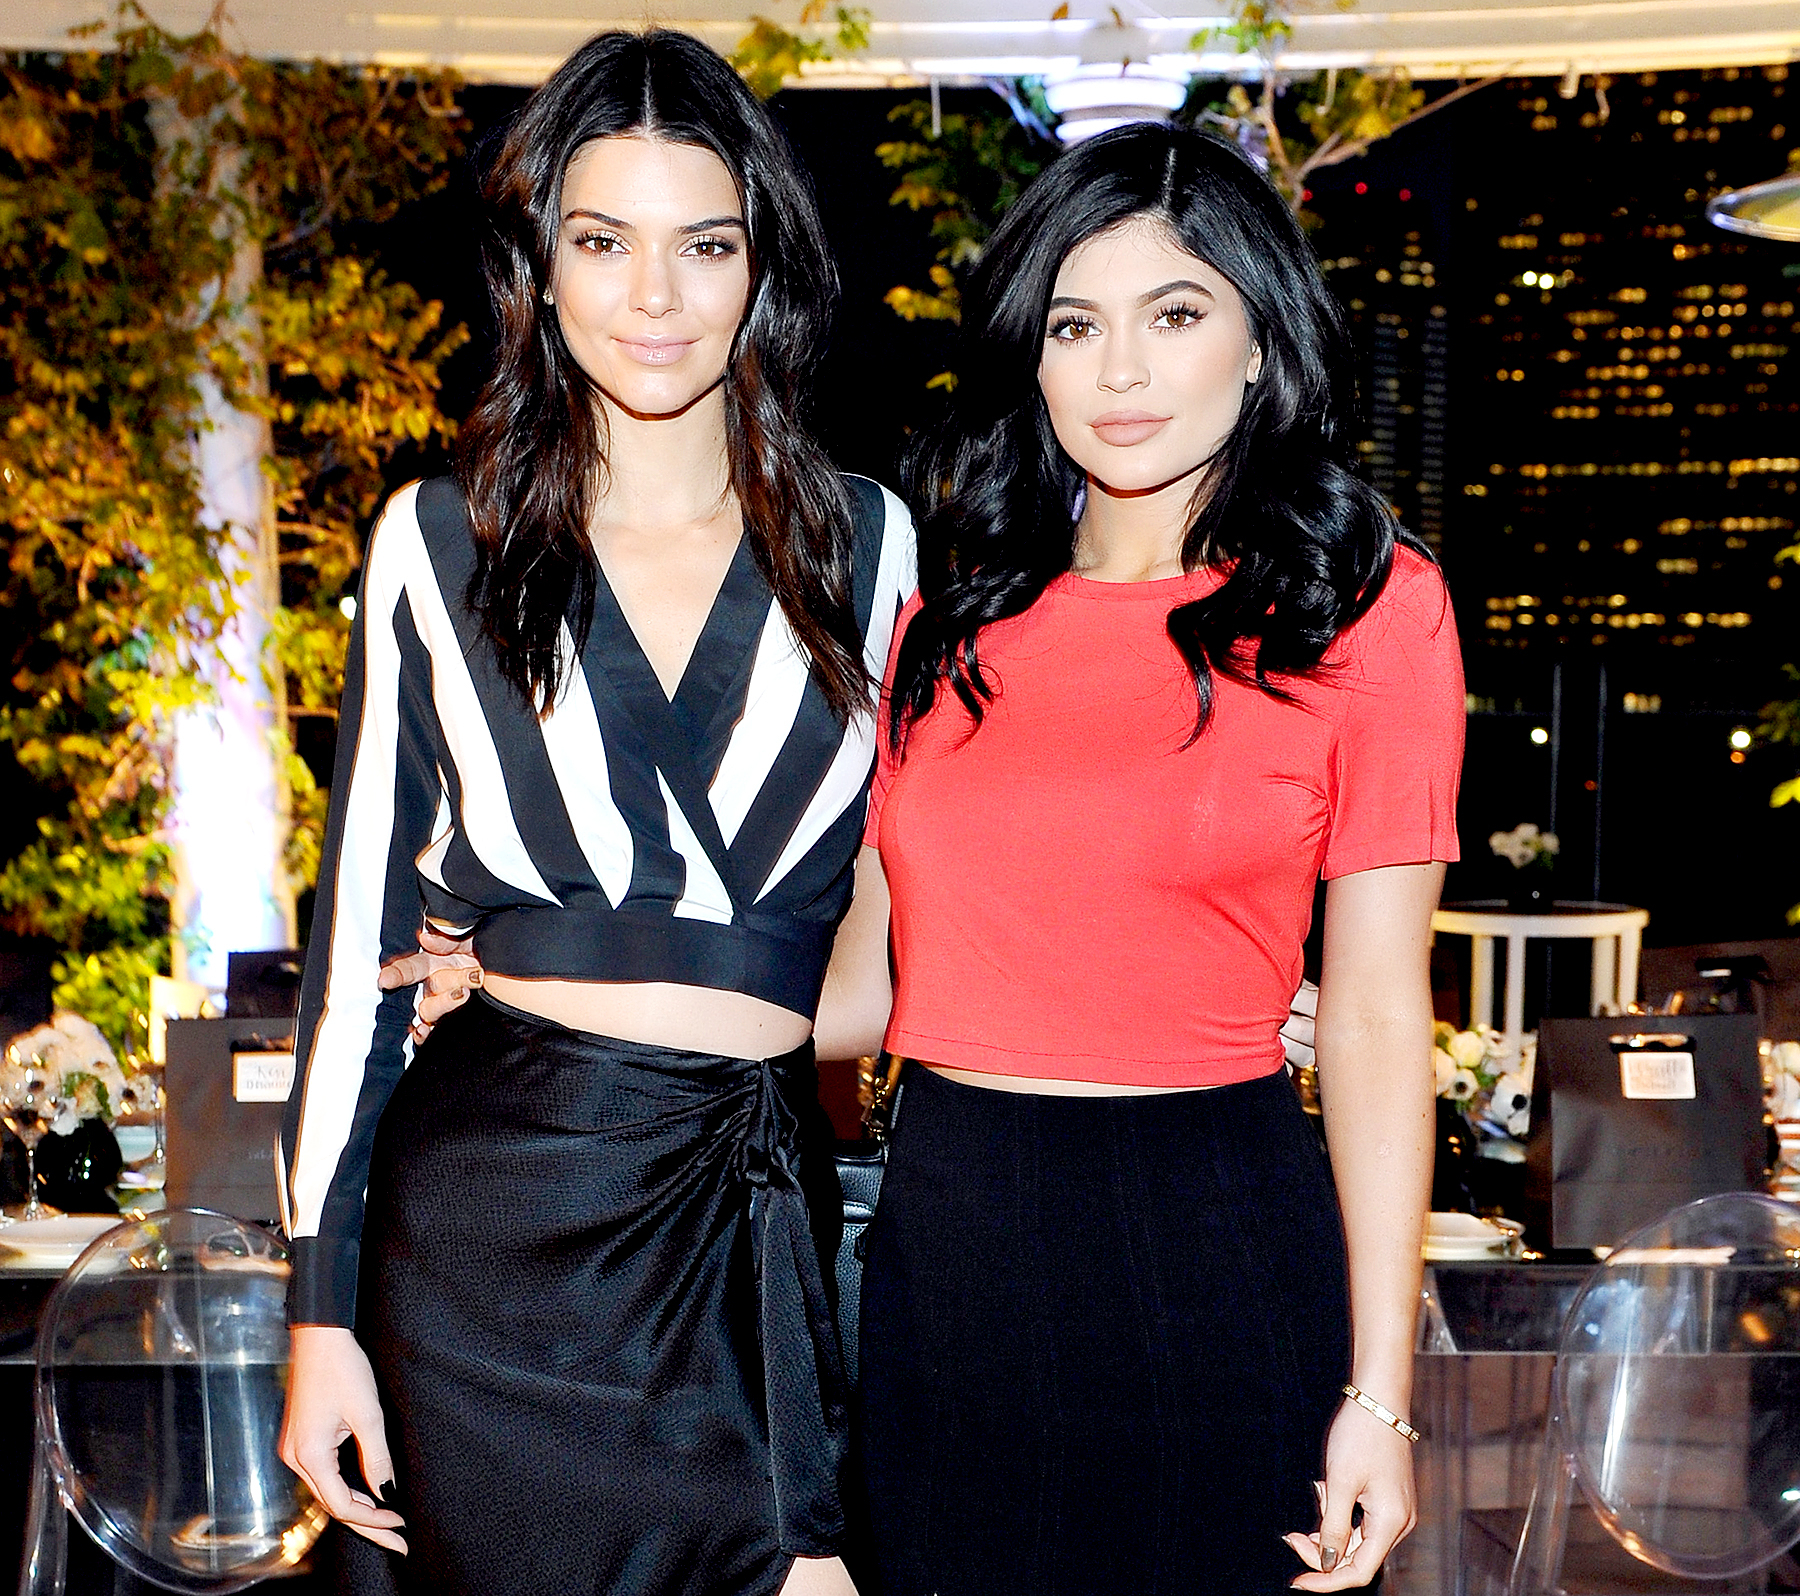 Kendall Jenner and Kylie Jenner attend as Neiman Marcus celebrates the exclusive #OnlyatNM KENDALL + KYLIE Collection at Neiman Marcus on March 31, 2016 in Beverly Hills, California.